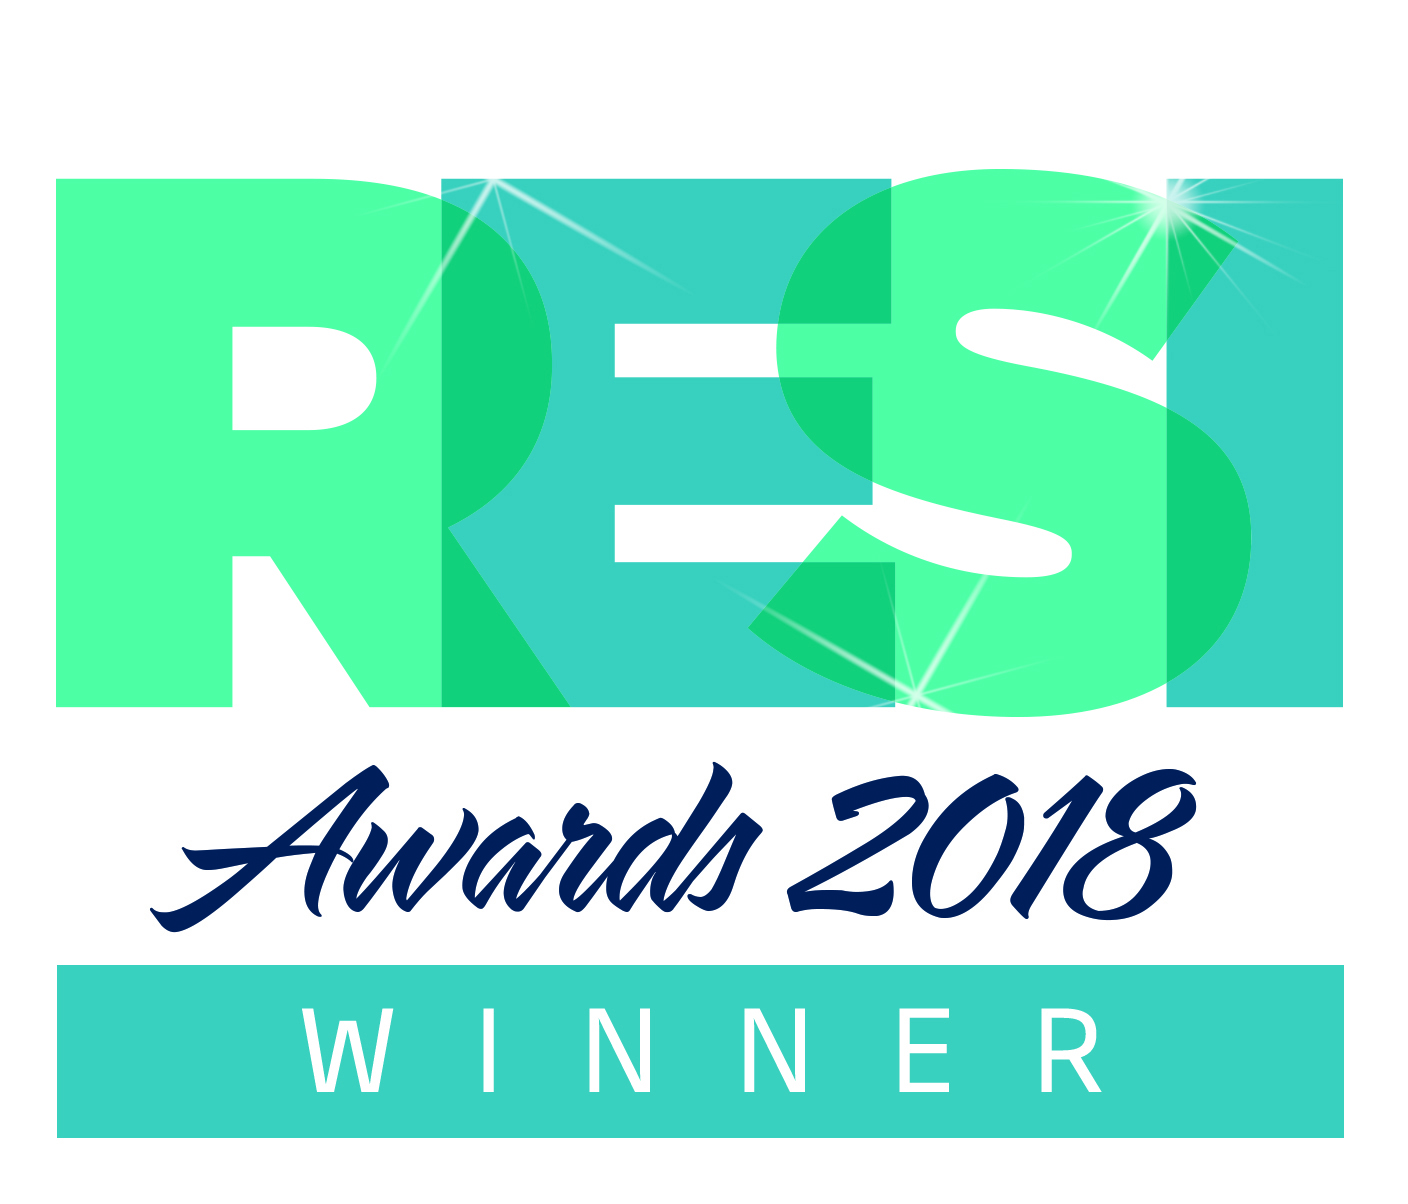 Resiawards2018winner.cmyk